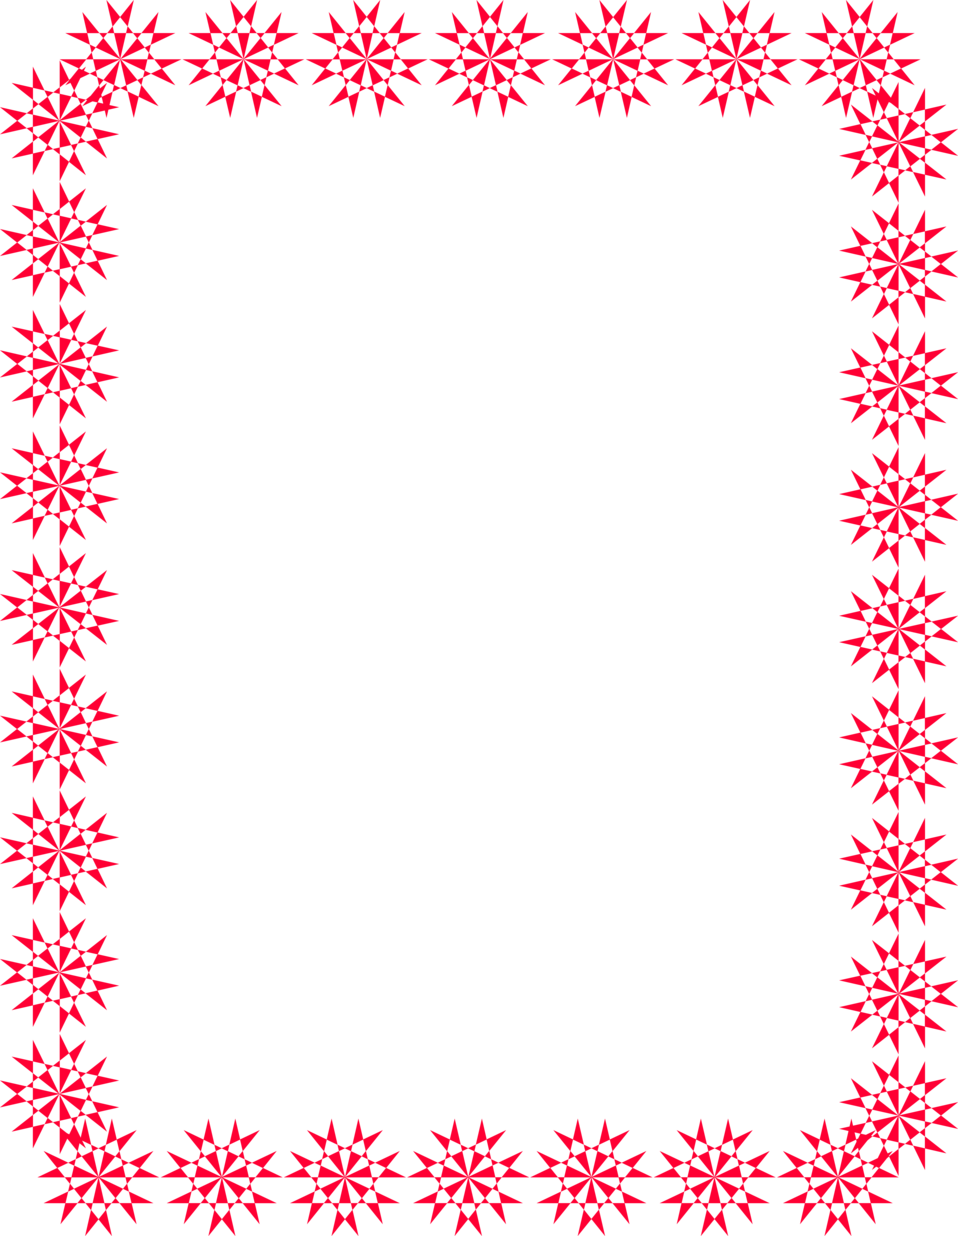 Free red snowflake border clipart image royalty free stock 28+ Collection of Christmas Clipart Borders Frames | High quality ... image royalty free stock